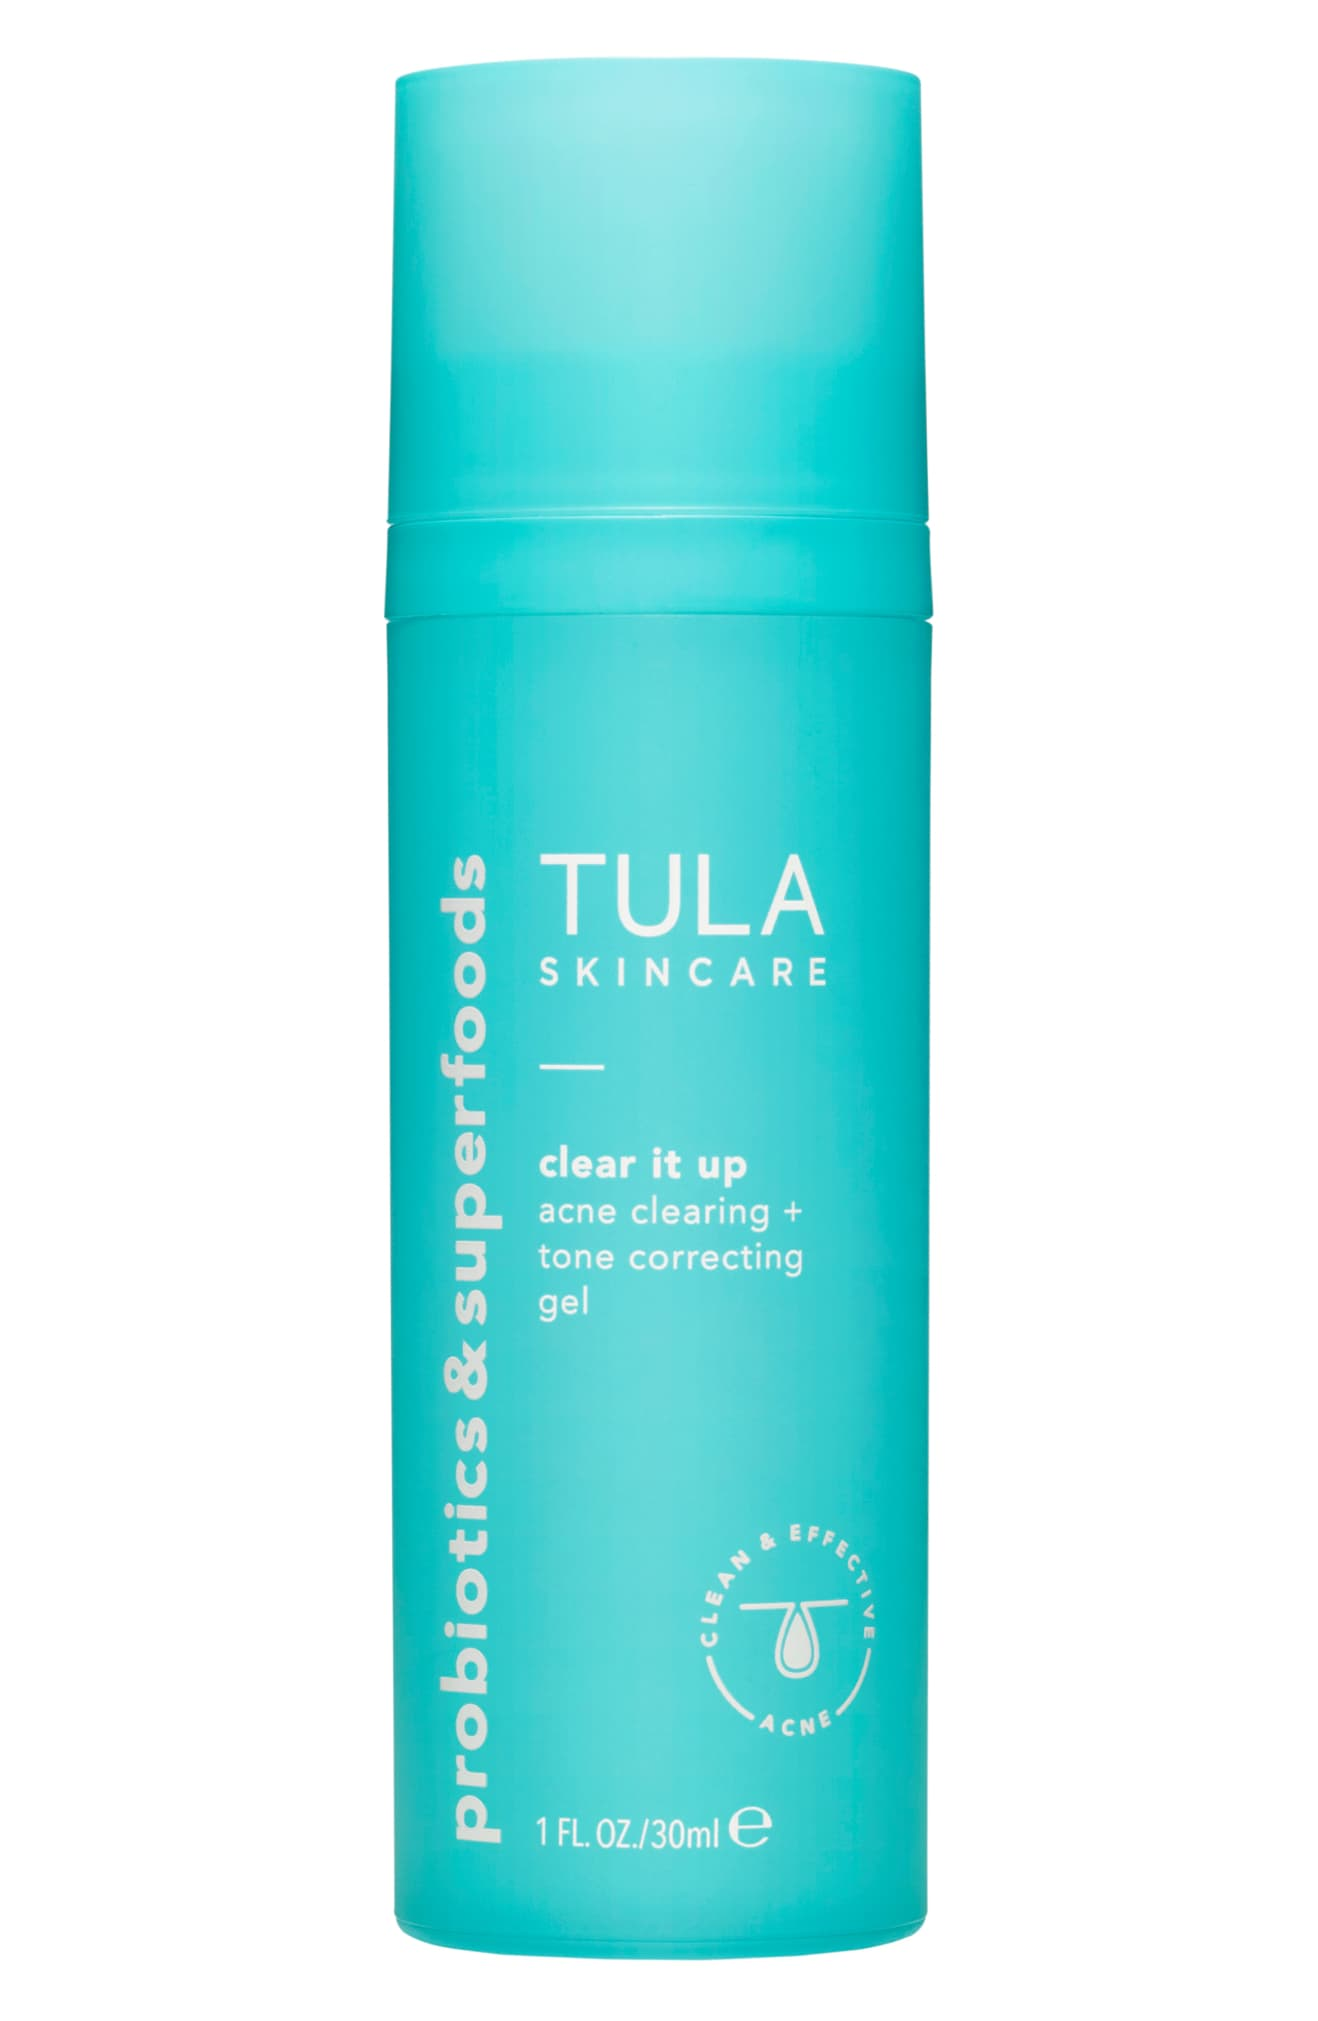 TULA PROBIOTIC SKINCARE Acne Clear It Up Acne Clearing + Correcting Gel